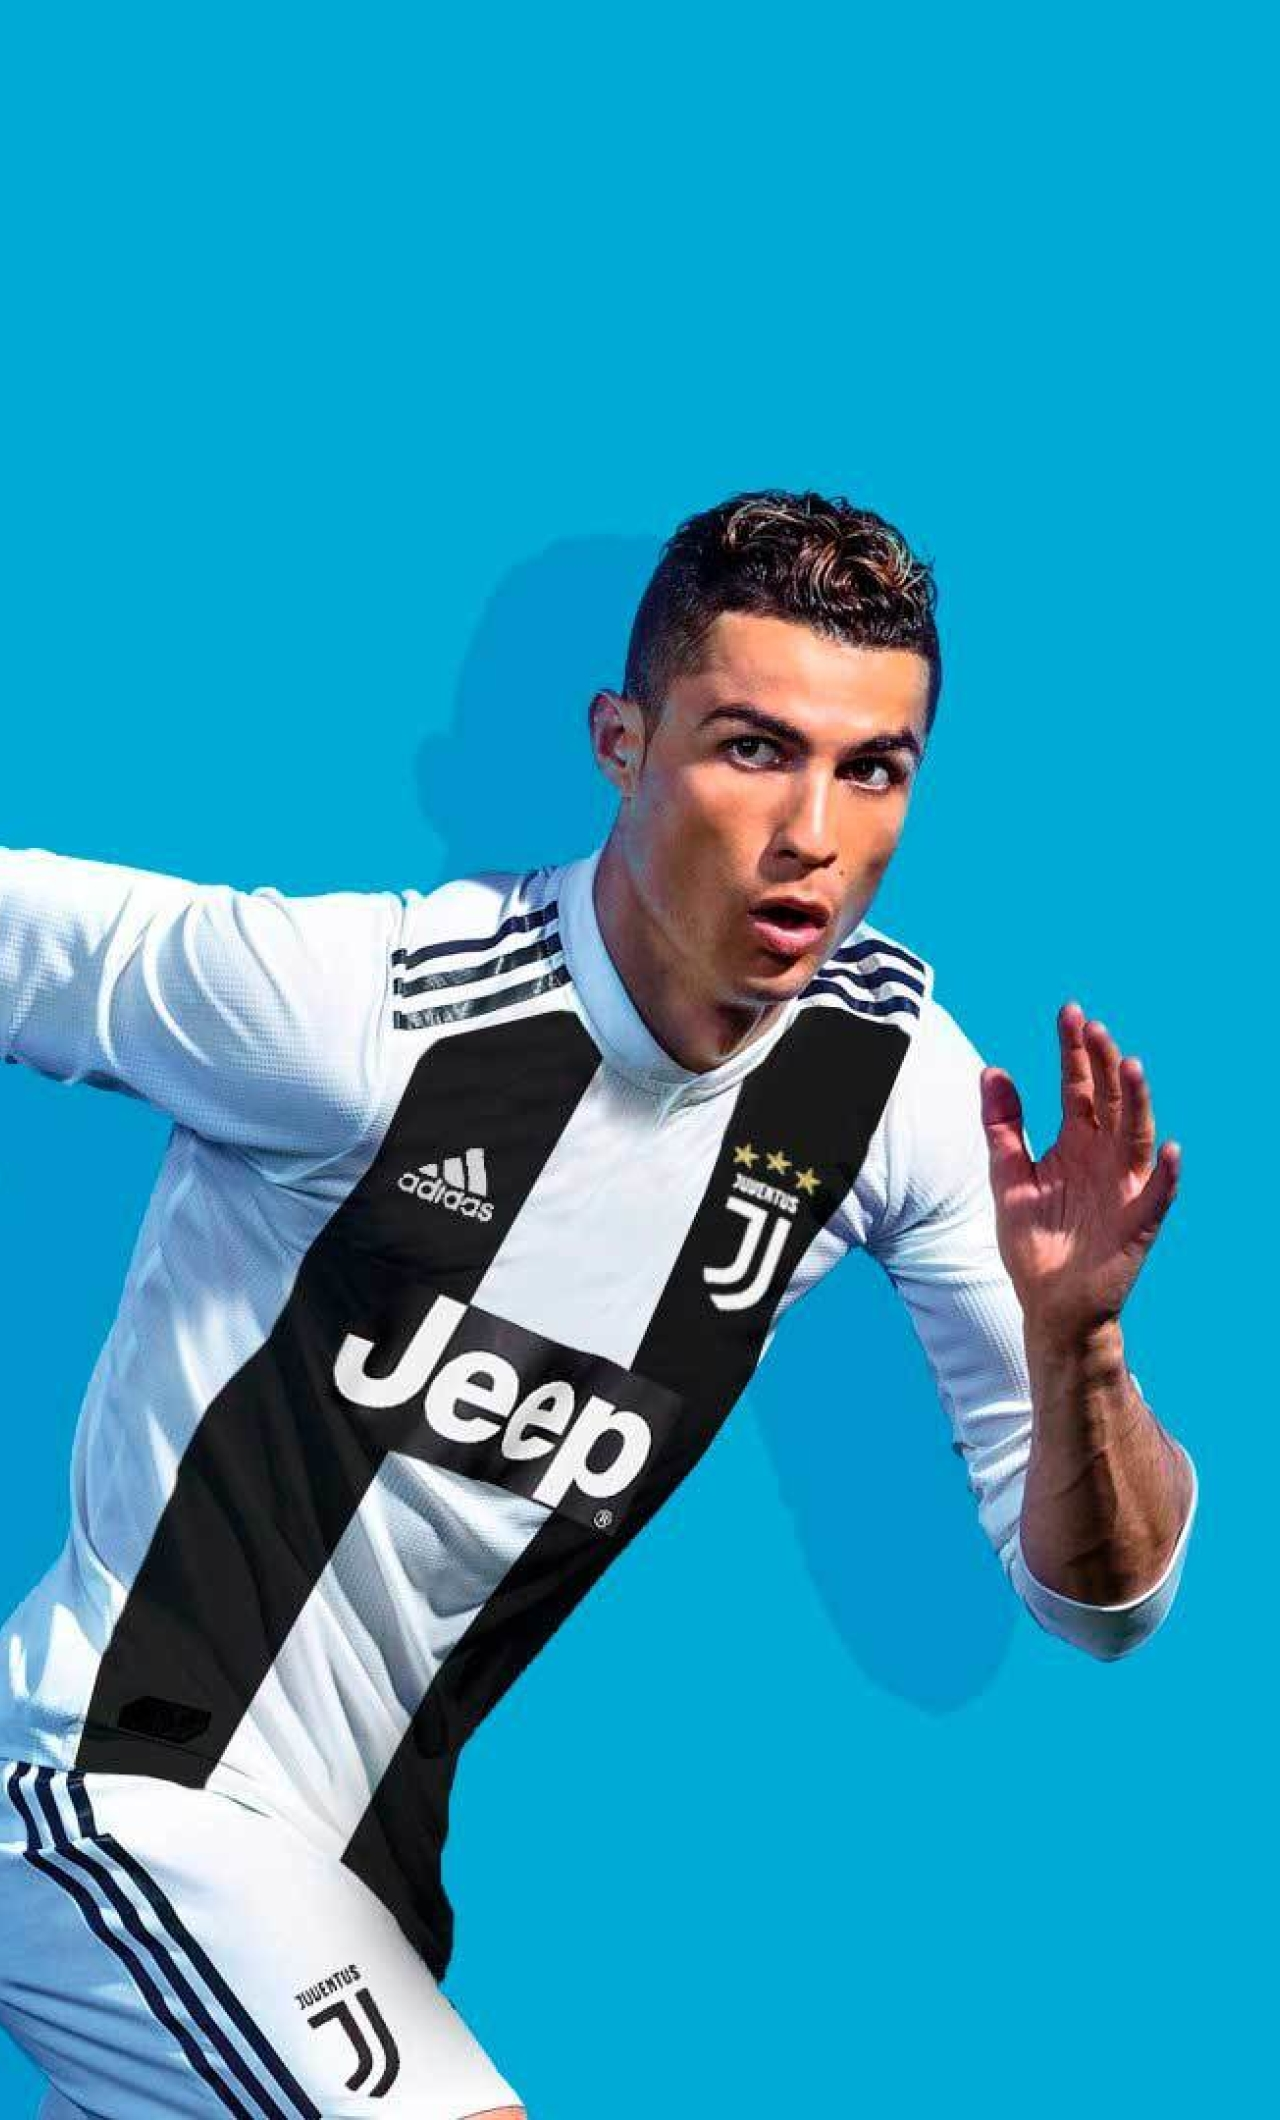 1280x2120 Cristiano Ronaldo Fifa 19 Game Iphone 6 Plus Wallpaper Hd Games 4k Wallpapers Images Photos And Background